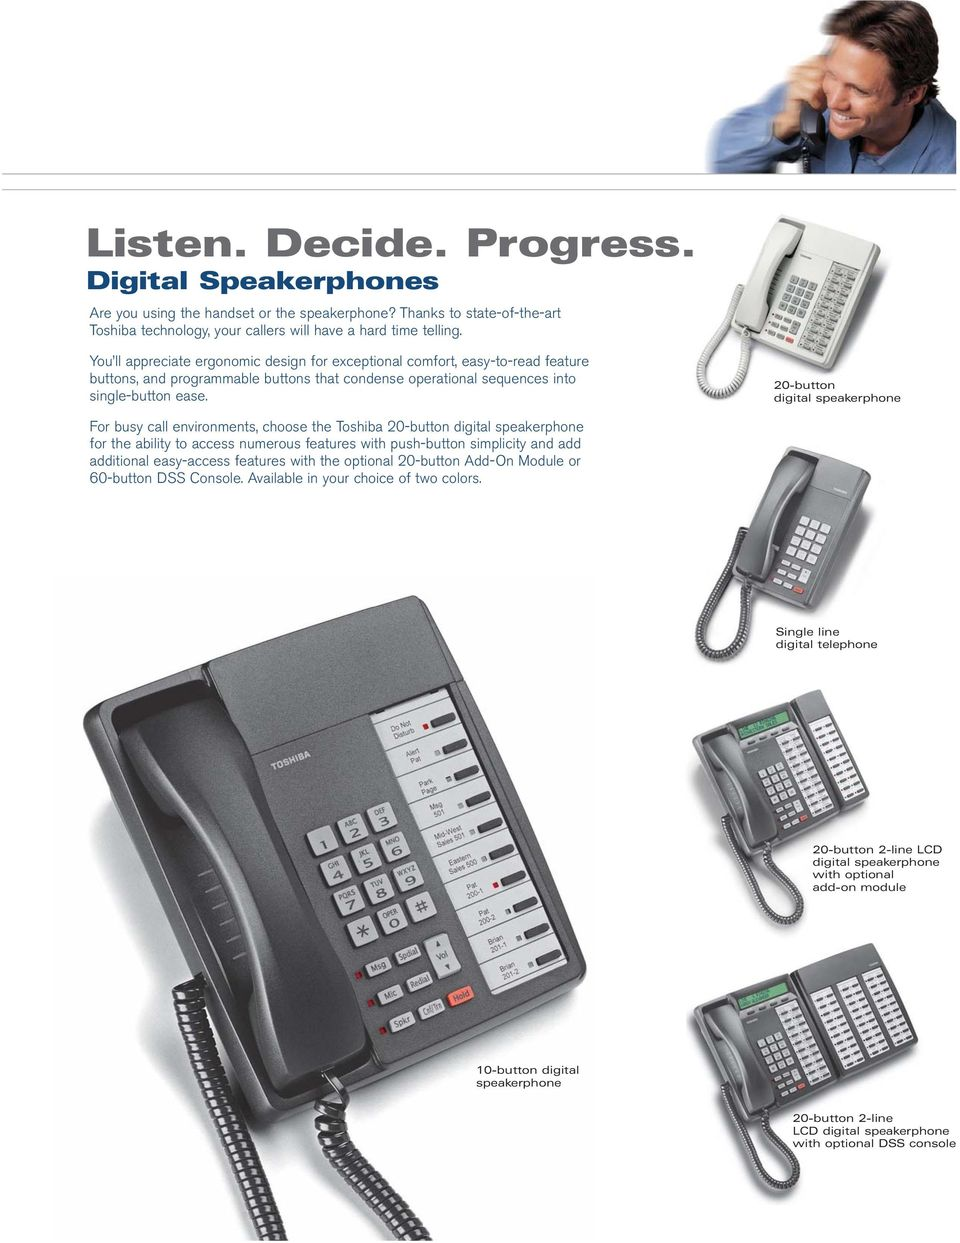 20-button digital speakerphone For busy call environments, choose the Toshiba 20-button digital speakerphone for the ability to access numerous features with push-button simplicity and add additional